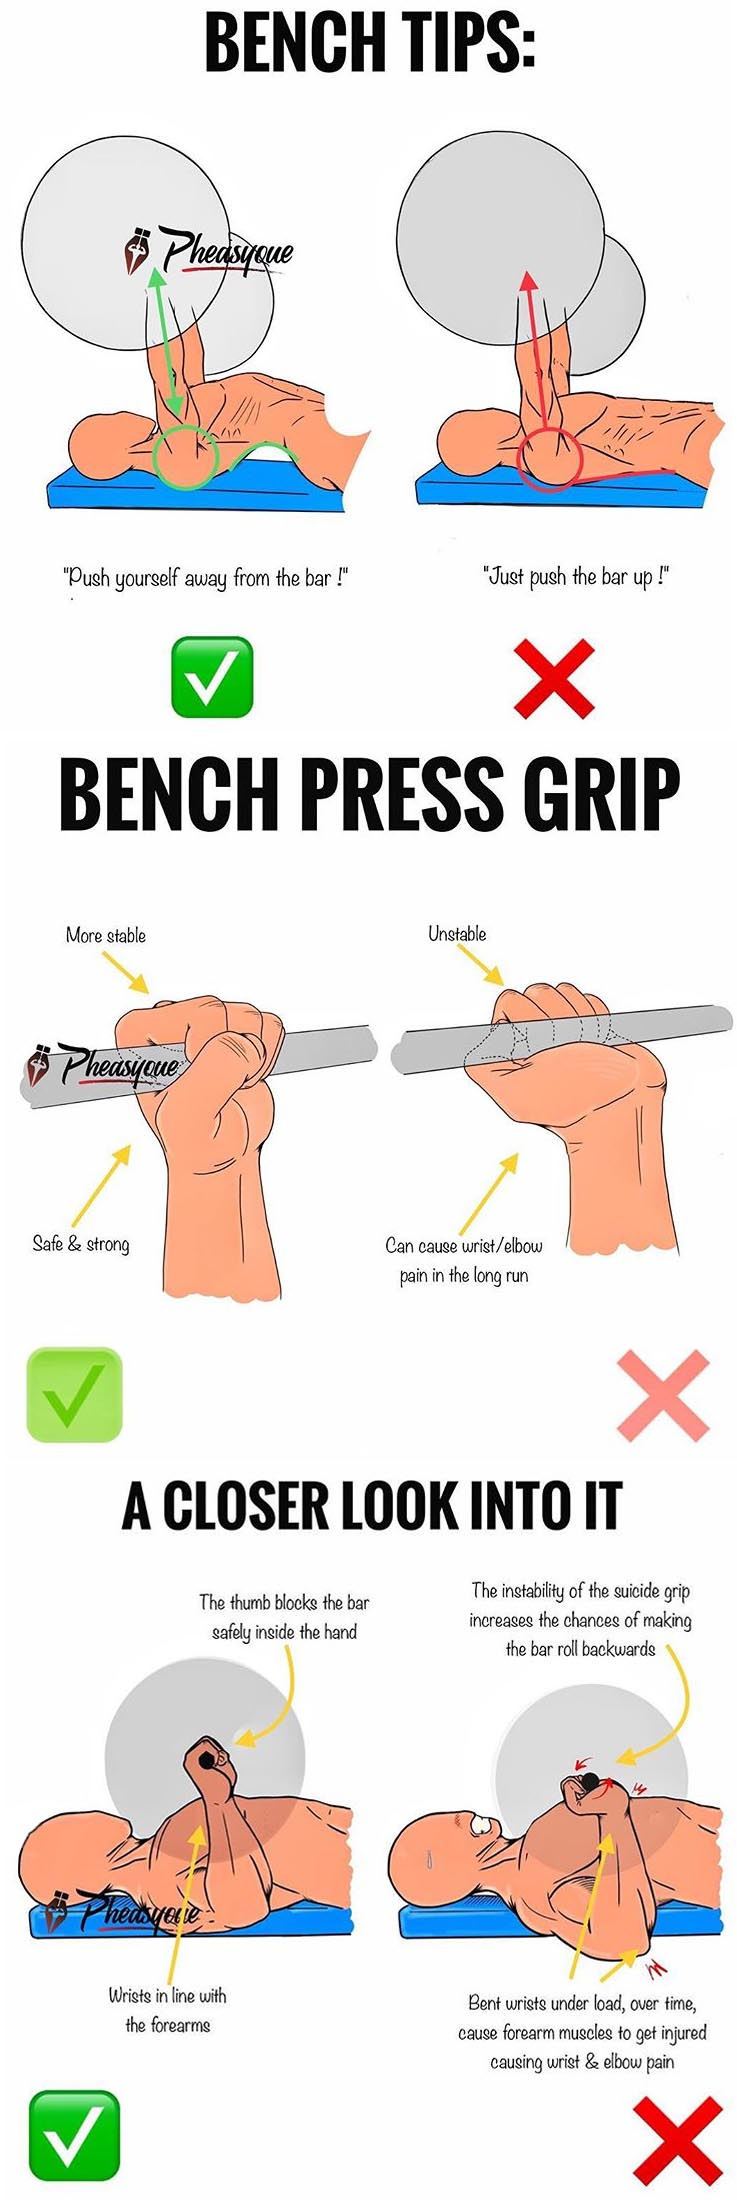 BENCH TIPS